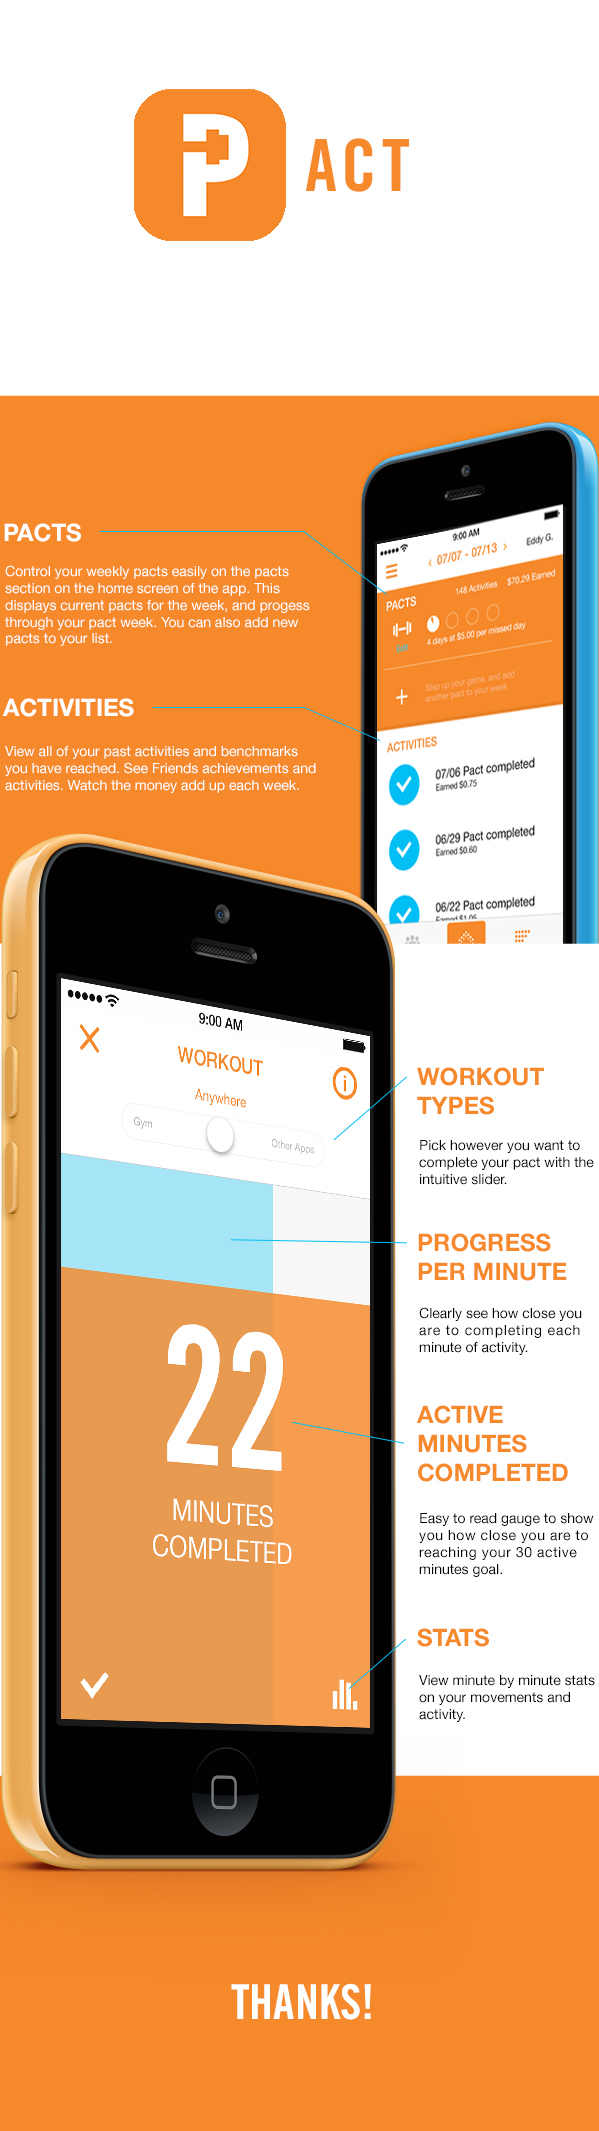 Pact App Redesign on Behance